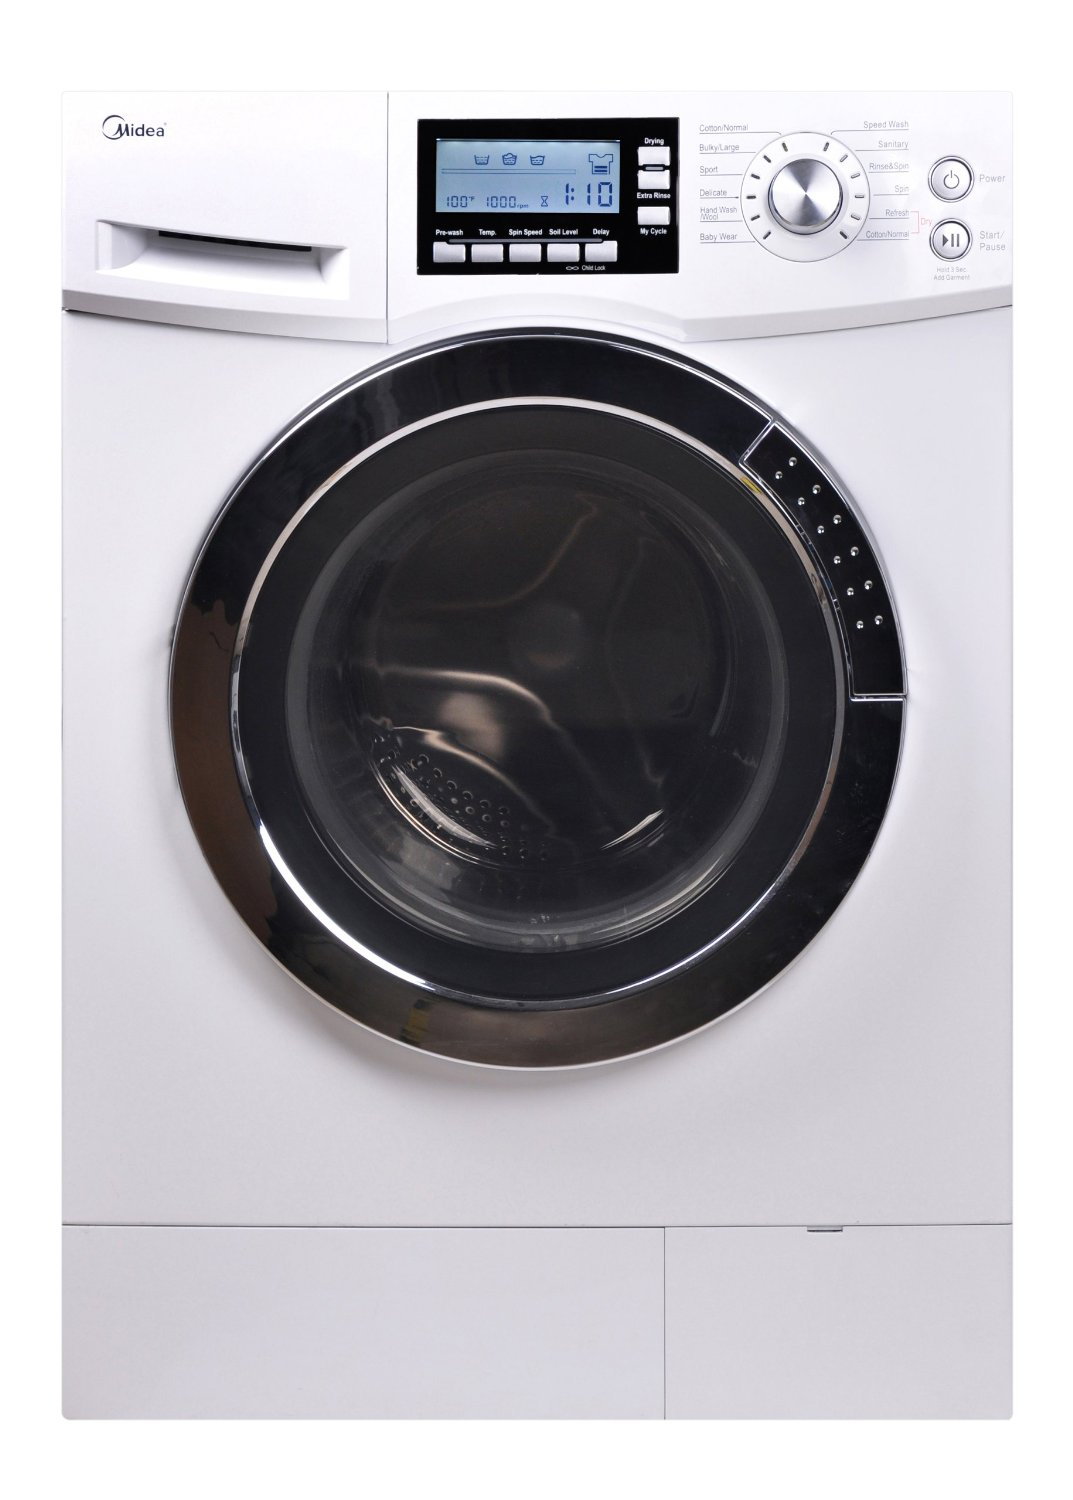 Midea 2.0 Cu. Ft. Washer/Dryer Combo